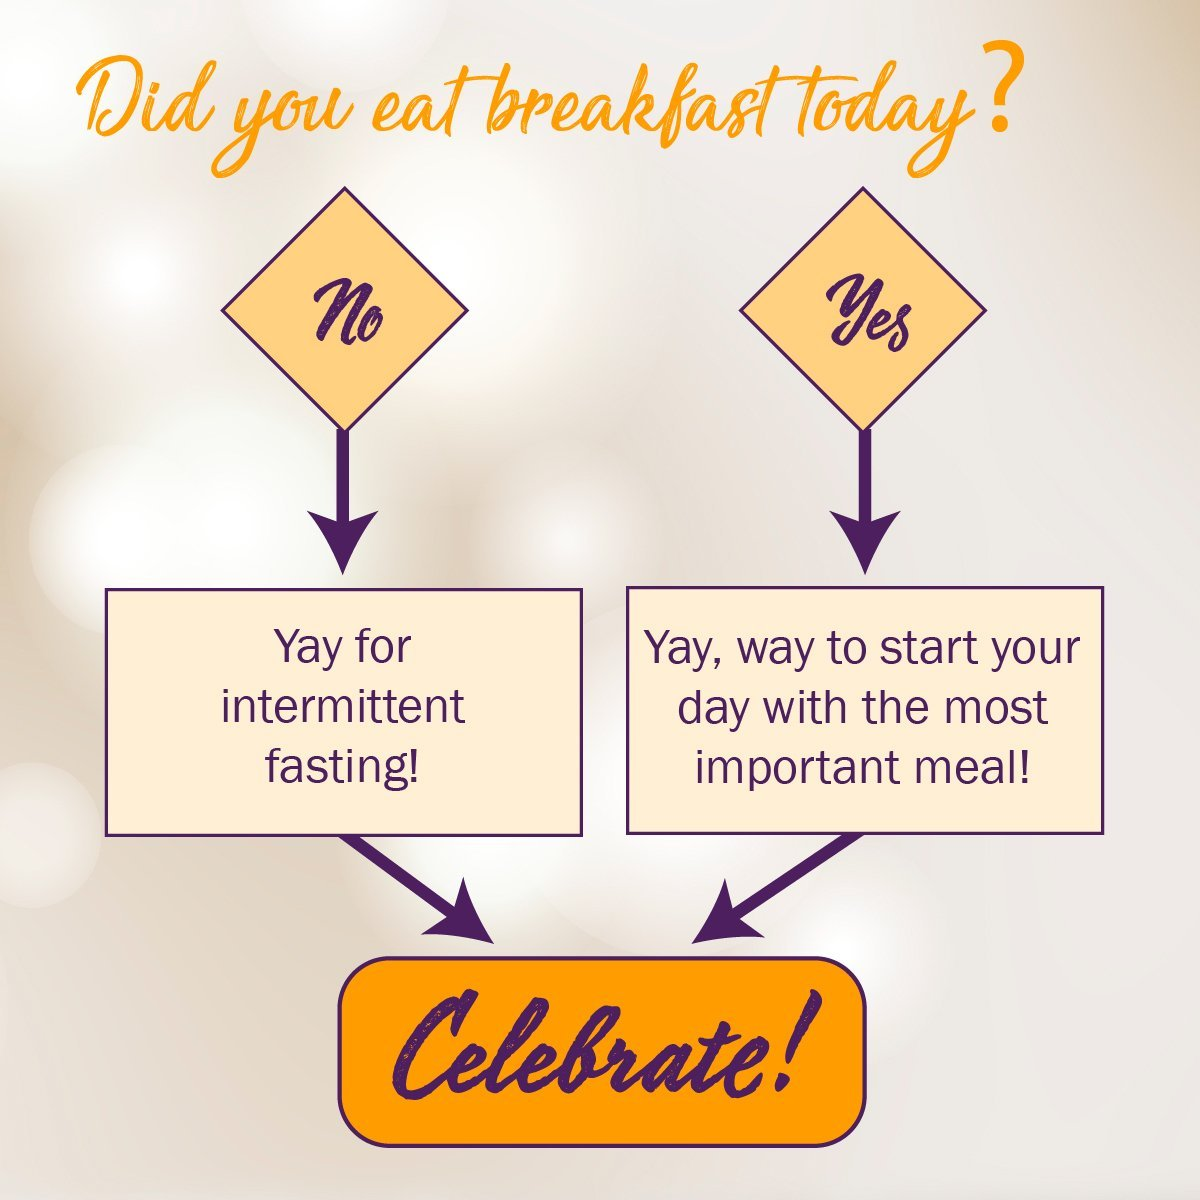 Did you eat breakfast today? No, ya for intermittent fasting! Yes, yay way to start your day with the most important meal! Celebrate!